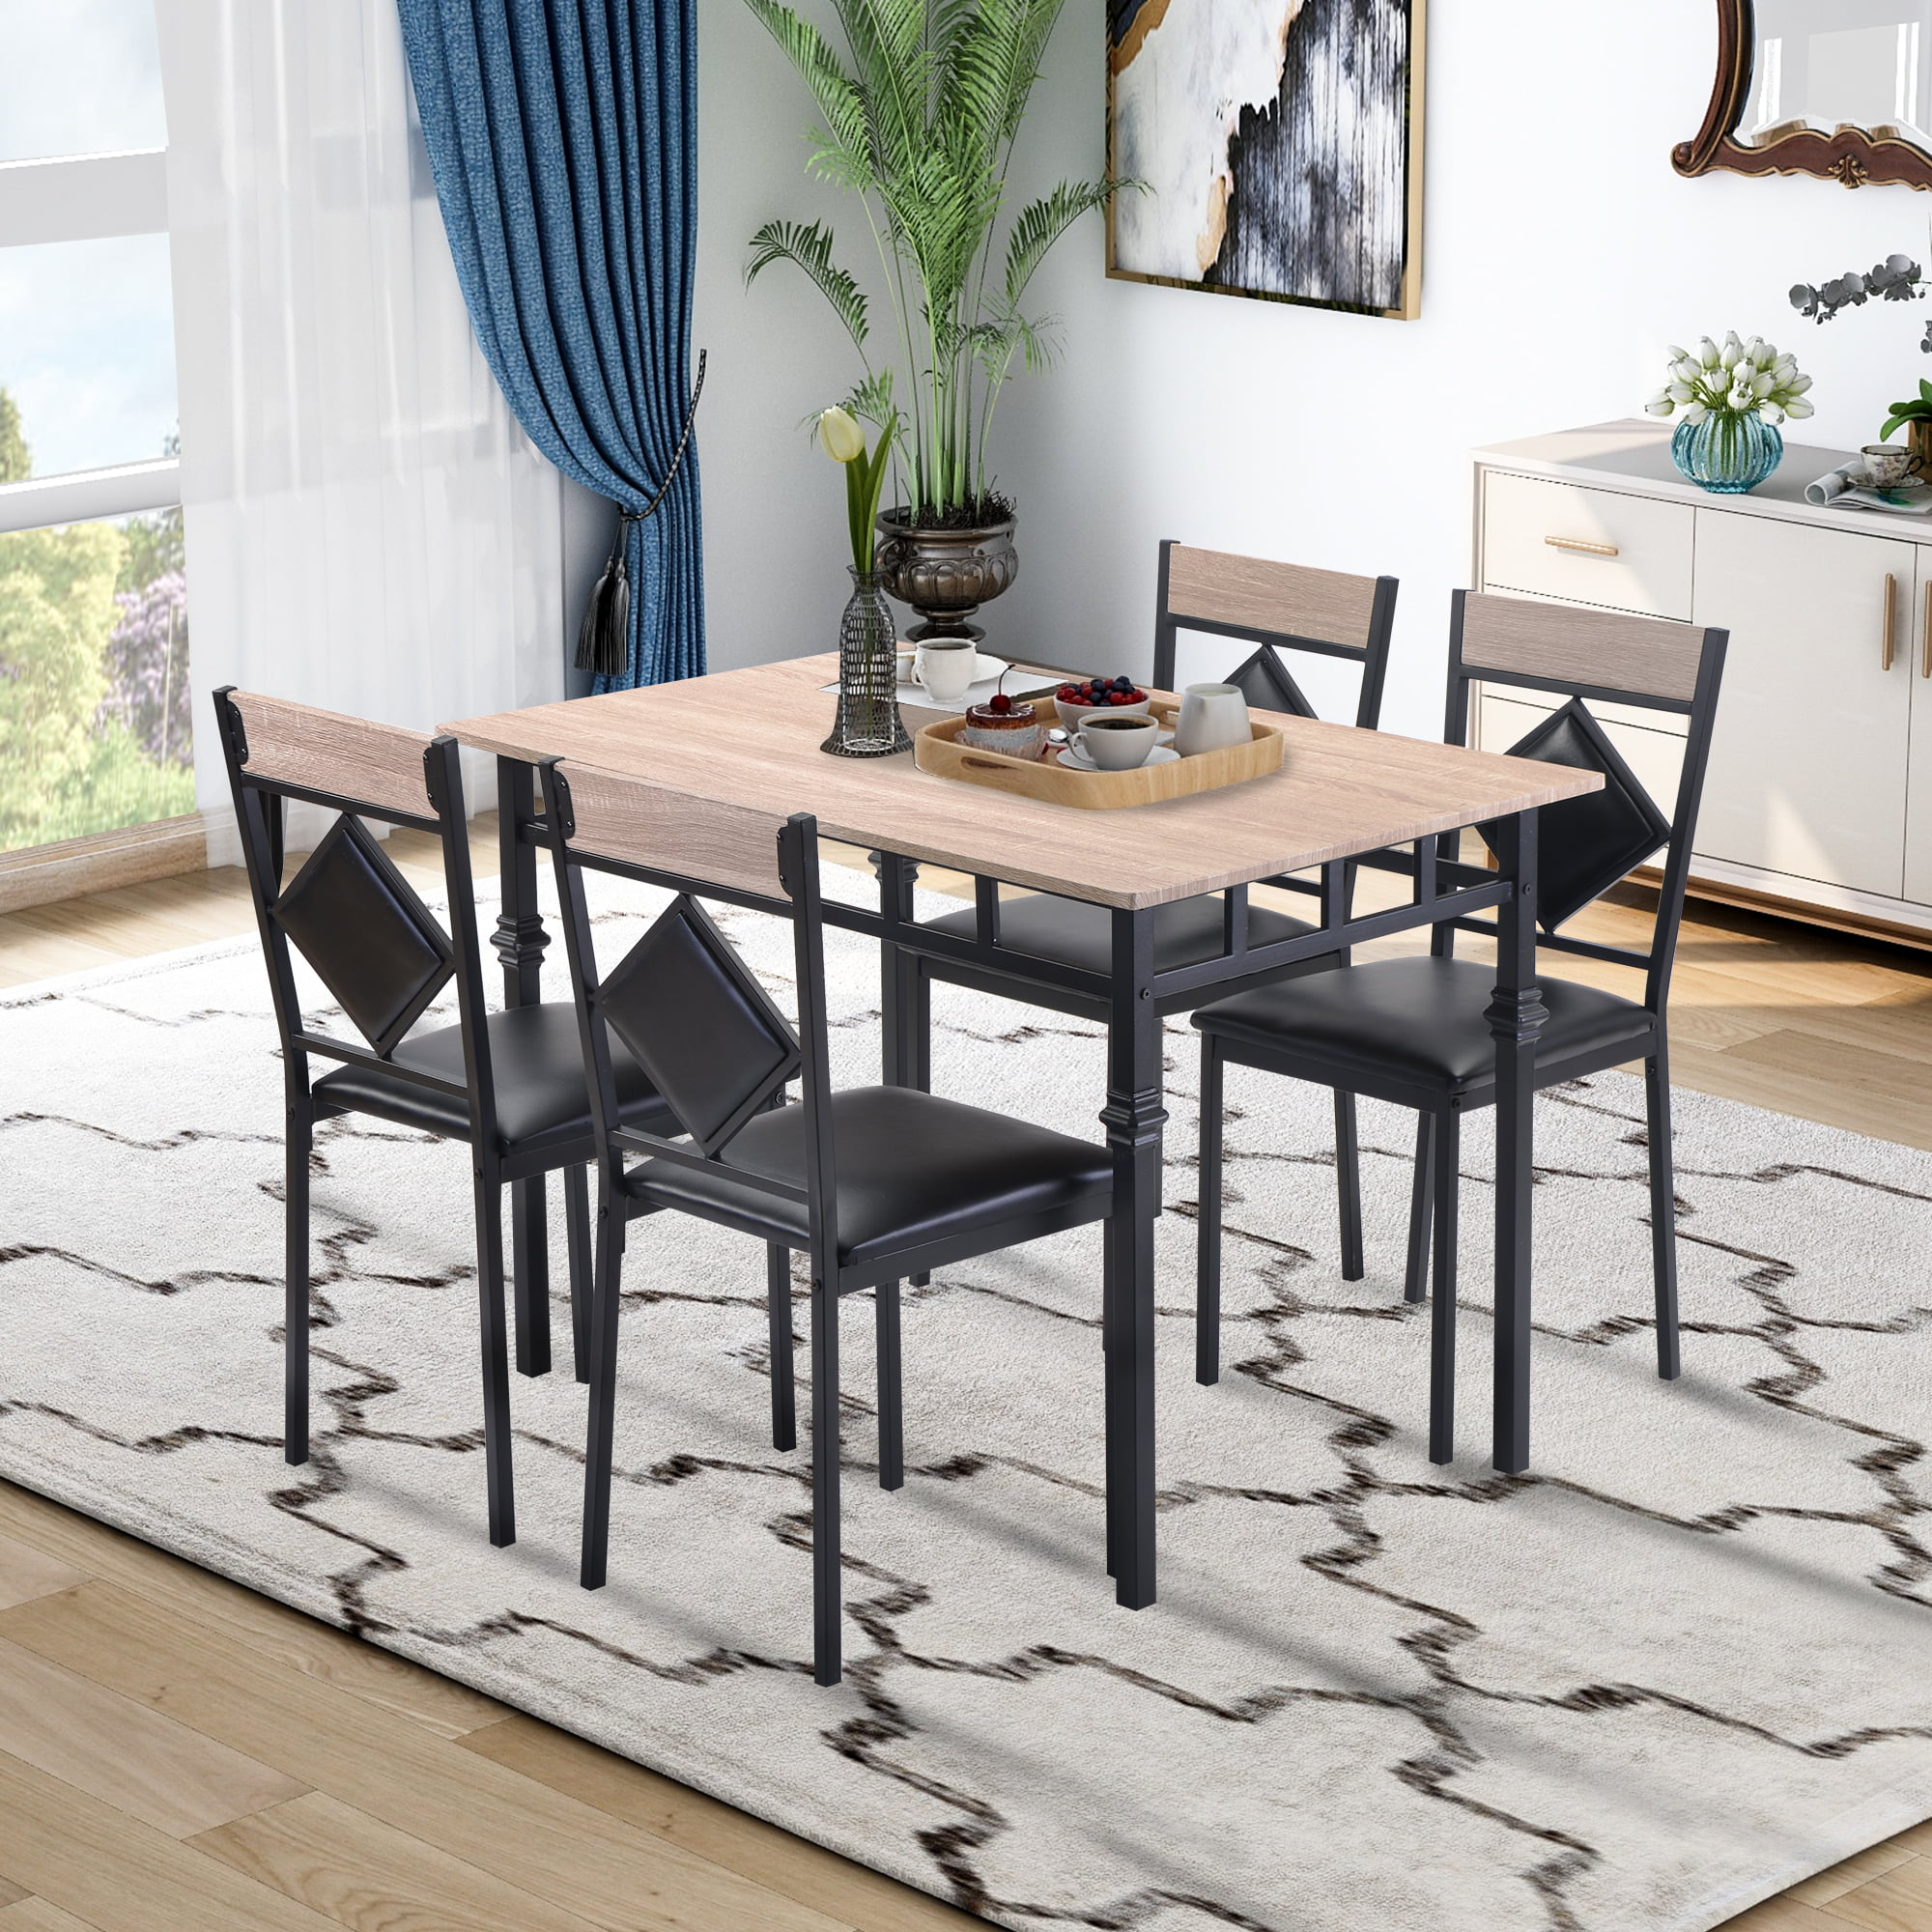 5 Pieces Dining Set Industrial Style, Industrial Style Dining Room Chairs